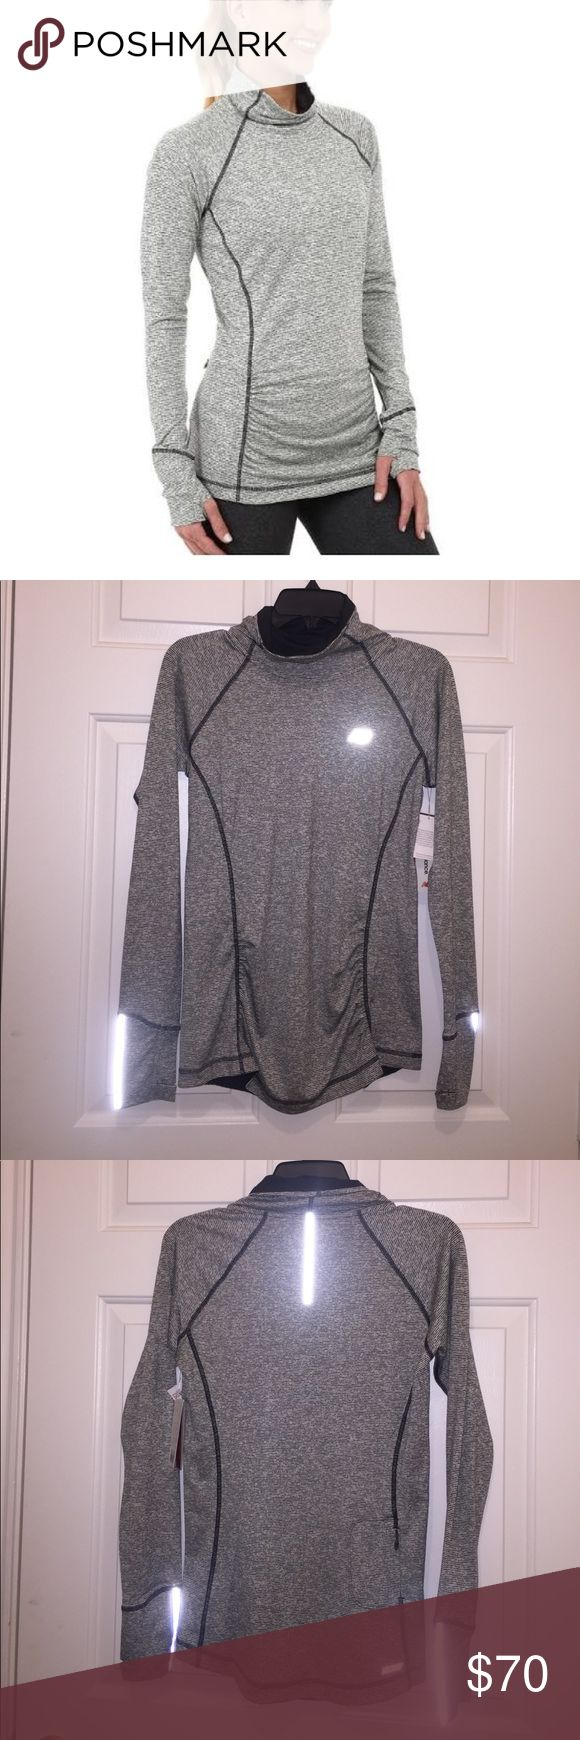 New Balance Glo Pullover Awesome athletic top, quick dry fabric, thumb holes, reflective, and zipper pocket on lower back. NWT. New Balance Tops